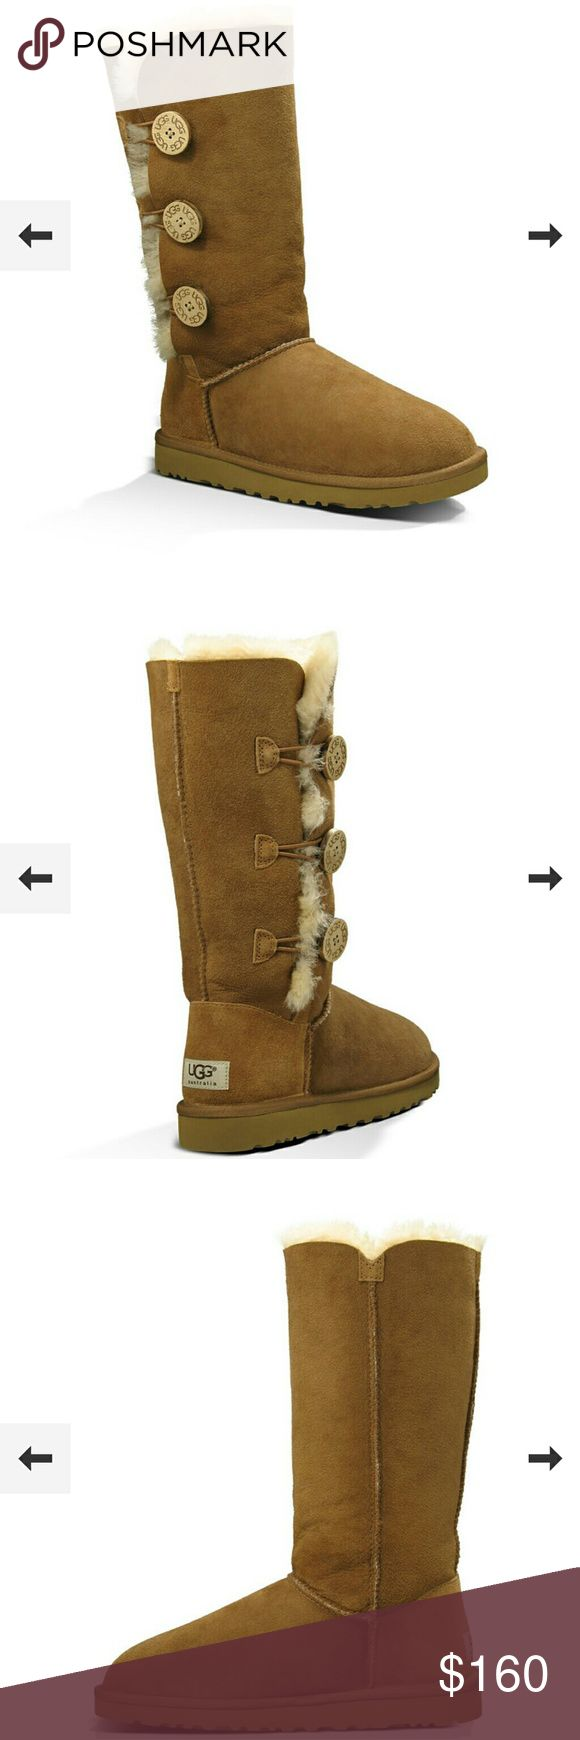 Womens UGG Bailey Button Triplett boots Never used and in box size 9 women's UGG boots in tan UGG Shoes Winter & Rain Boots